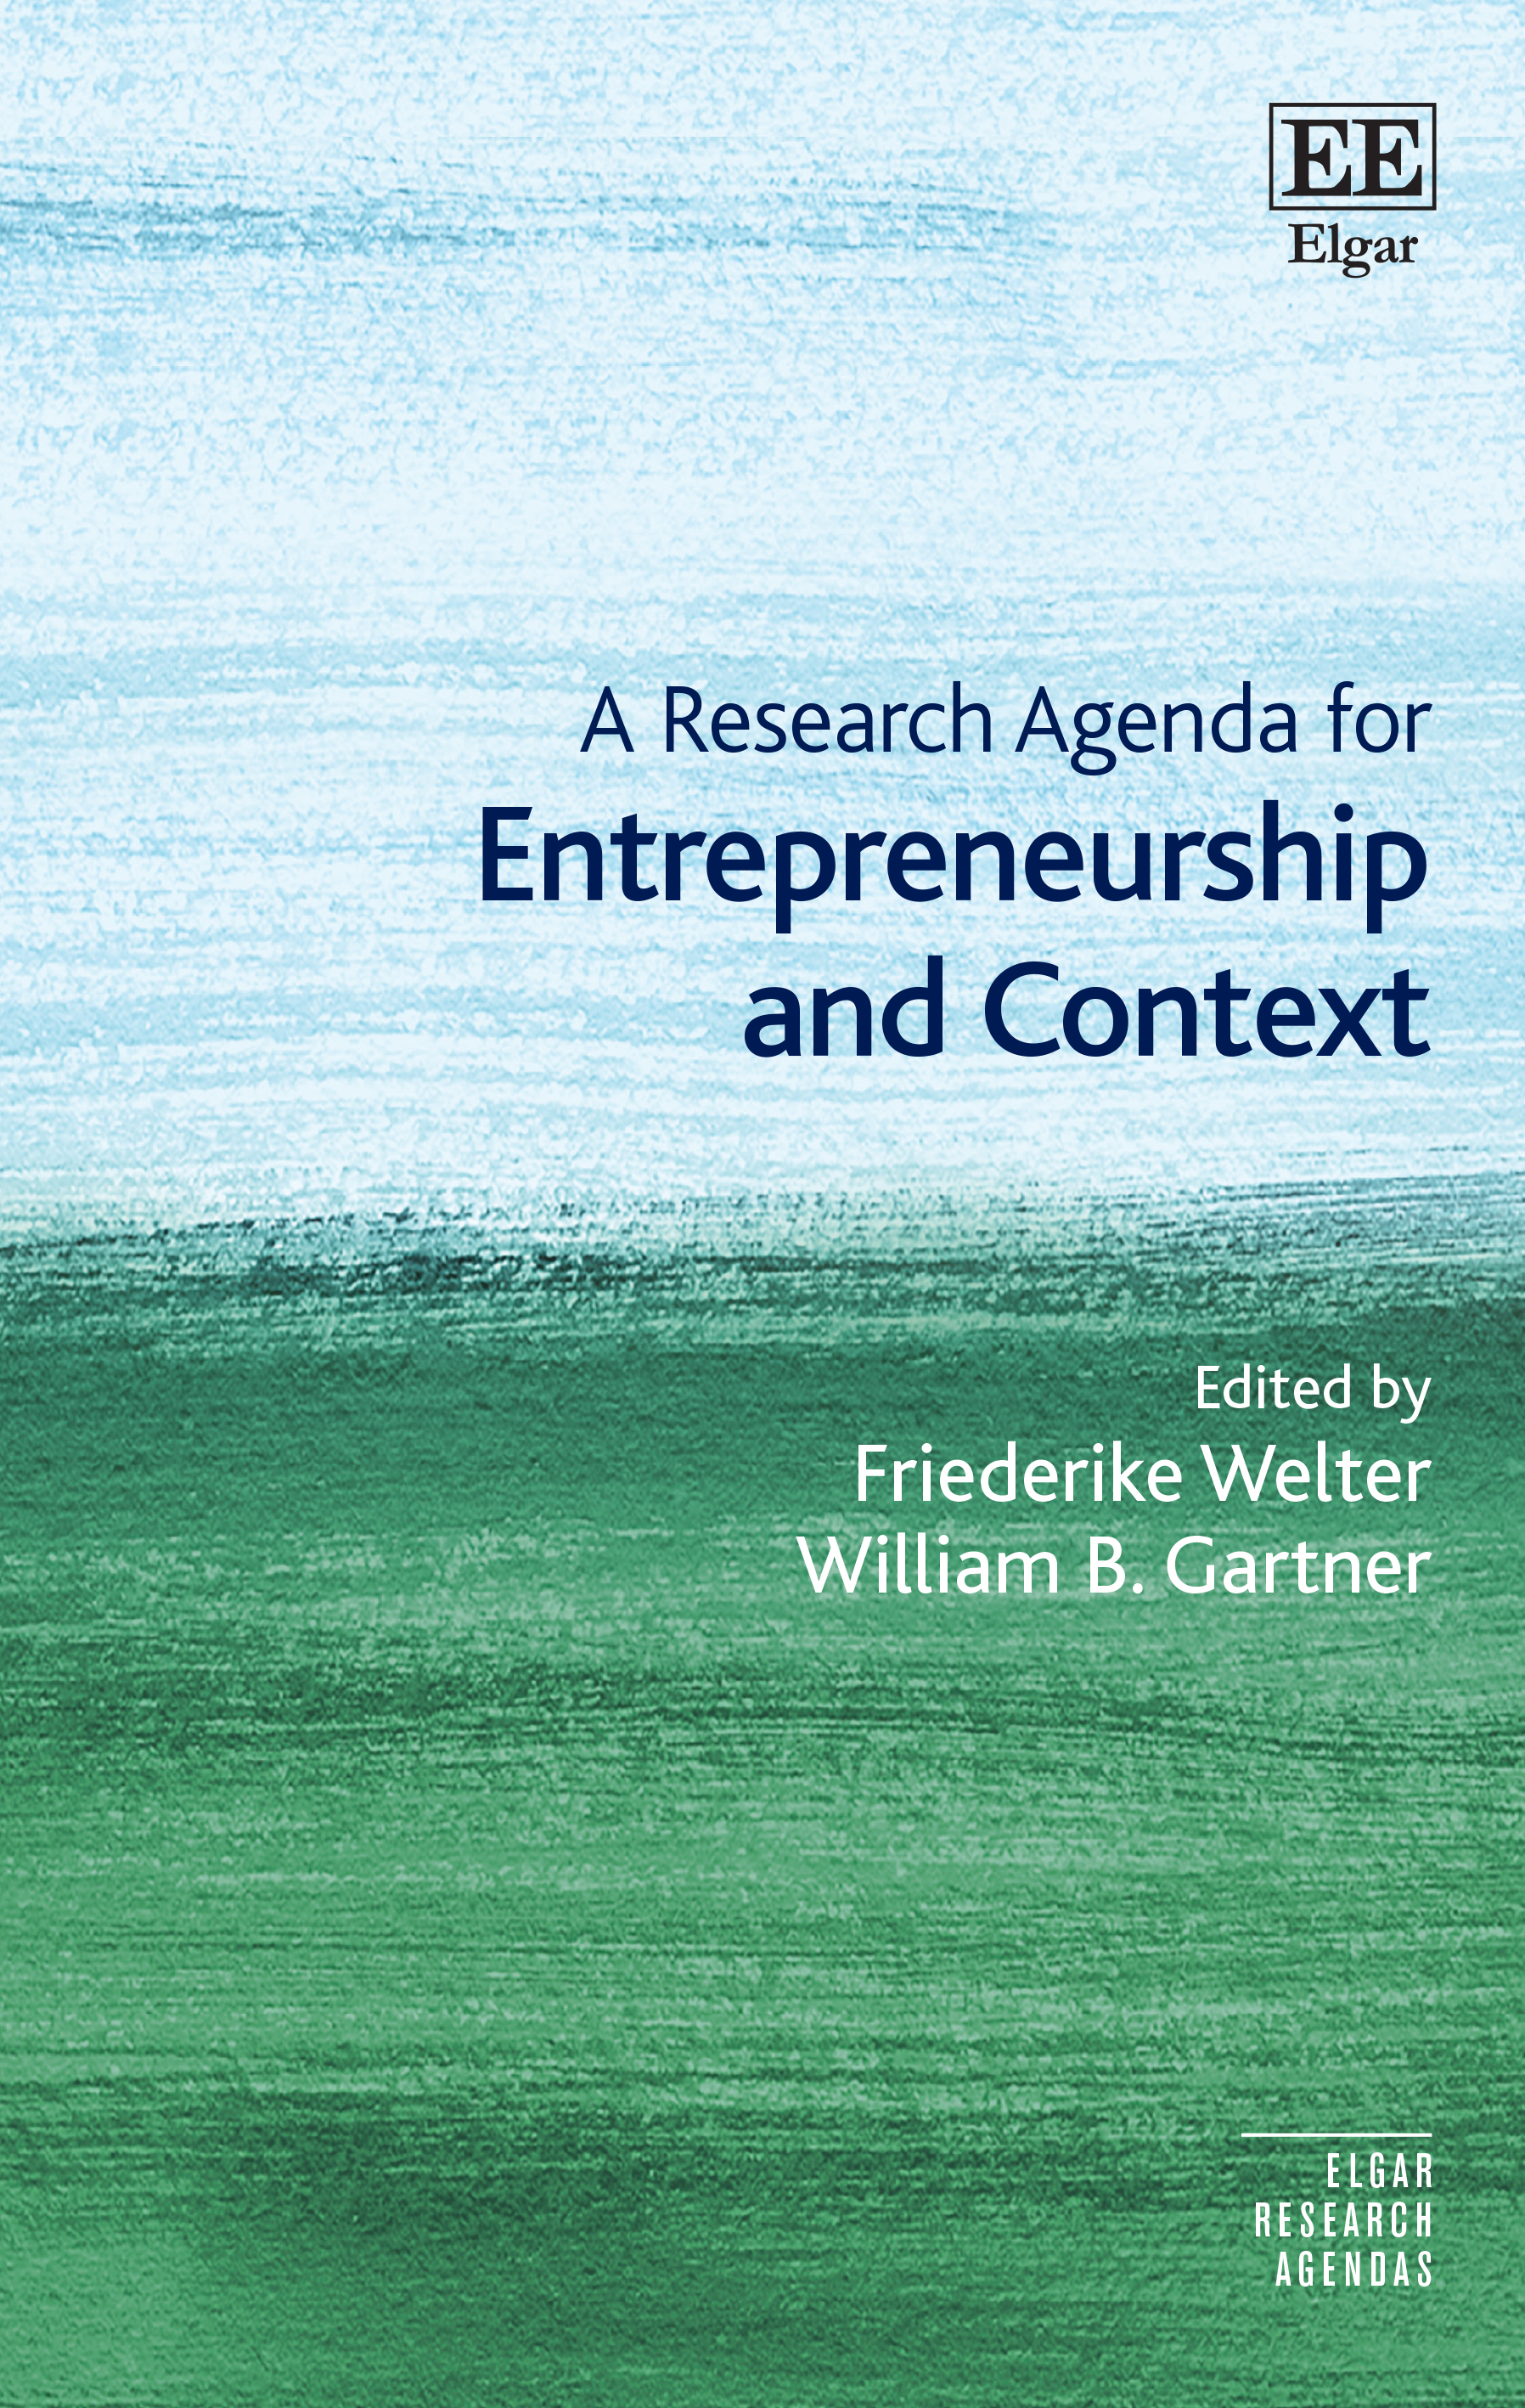 Download Ebook A Research Agenda for Entrepreneurship and Context by Friederike Welter Pdf